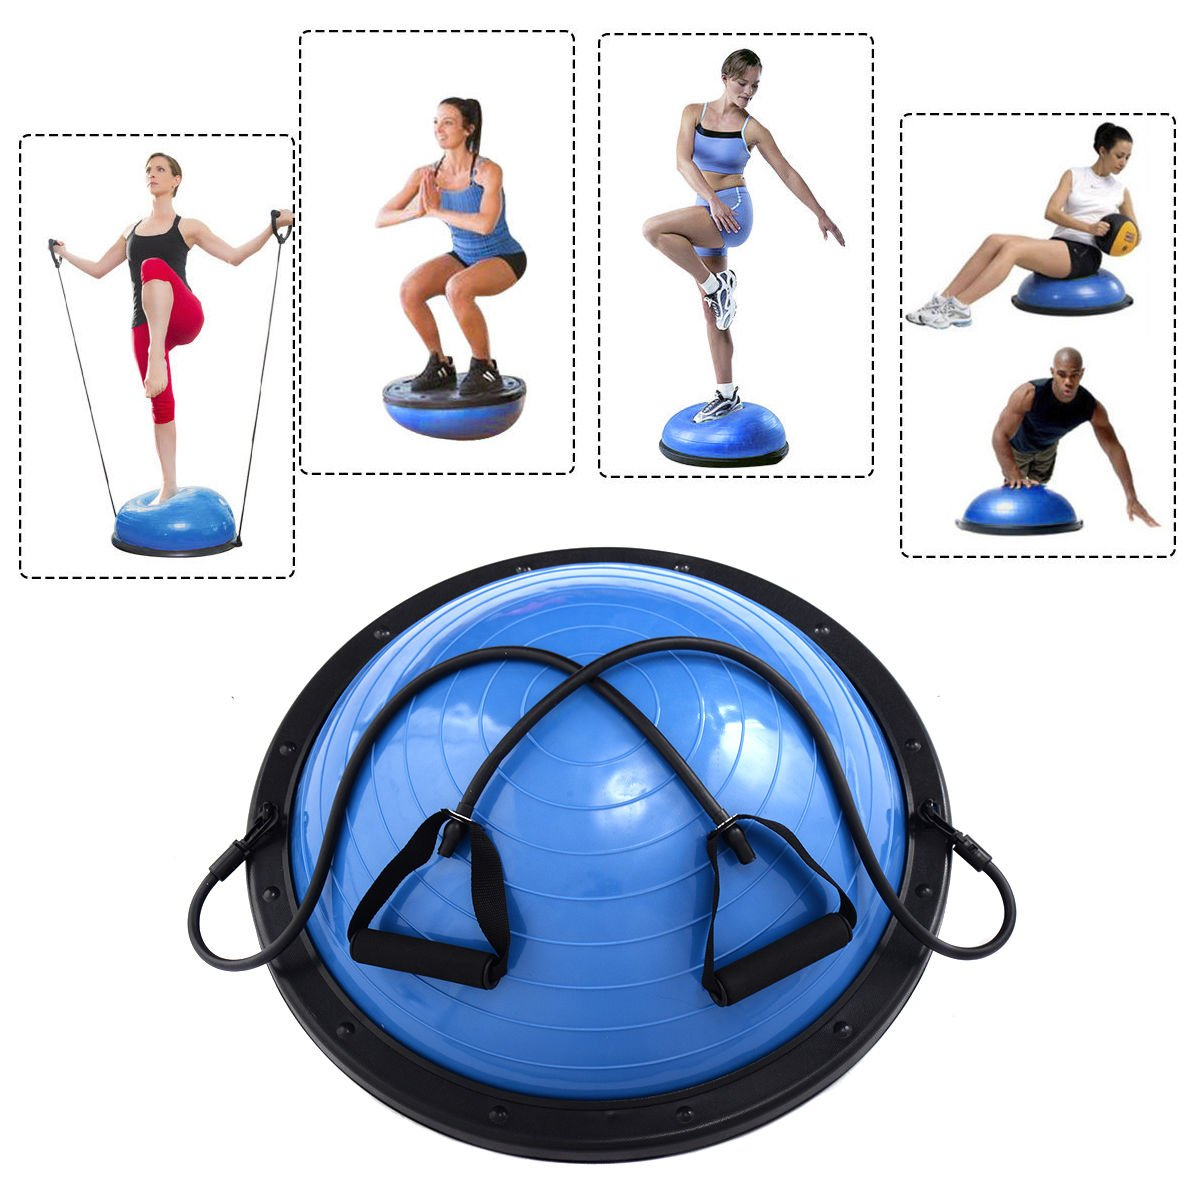 New 23'' Yoga Ball Balance Trainer Yoga Fitness Strength Exercise Workout w/Pump Blue